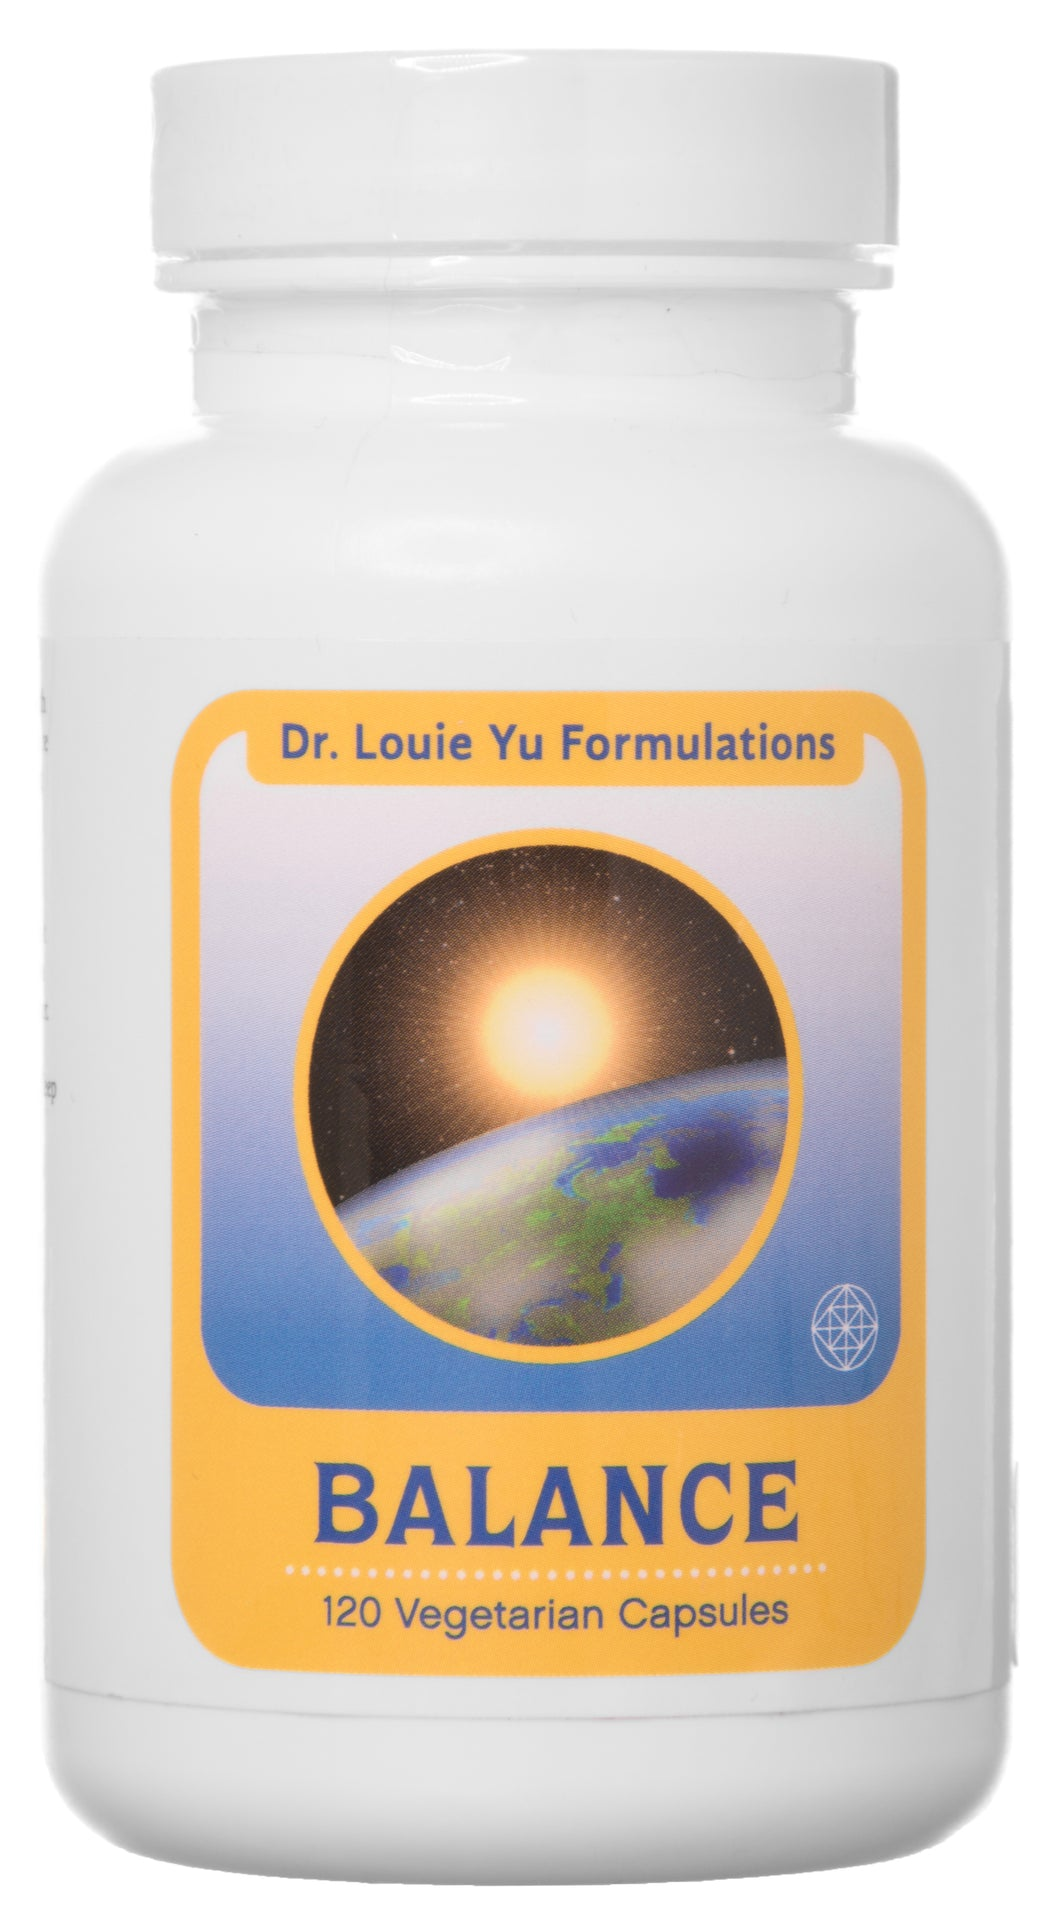 Dr. Louie Yu Formulations Balance All-Natural Relief for Symptoms of Irritable Bowel Syndrome (IBS) Including Bloating, Constipation, Gas, Diarrhea | Supports Digestive Health | 120 Veg Capsules